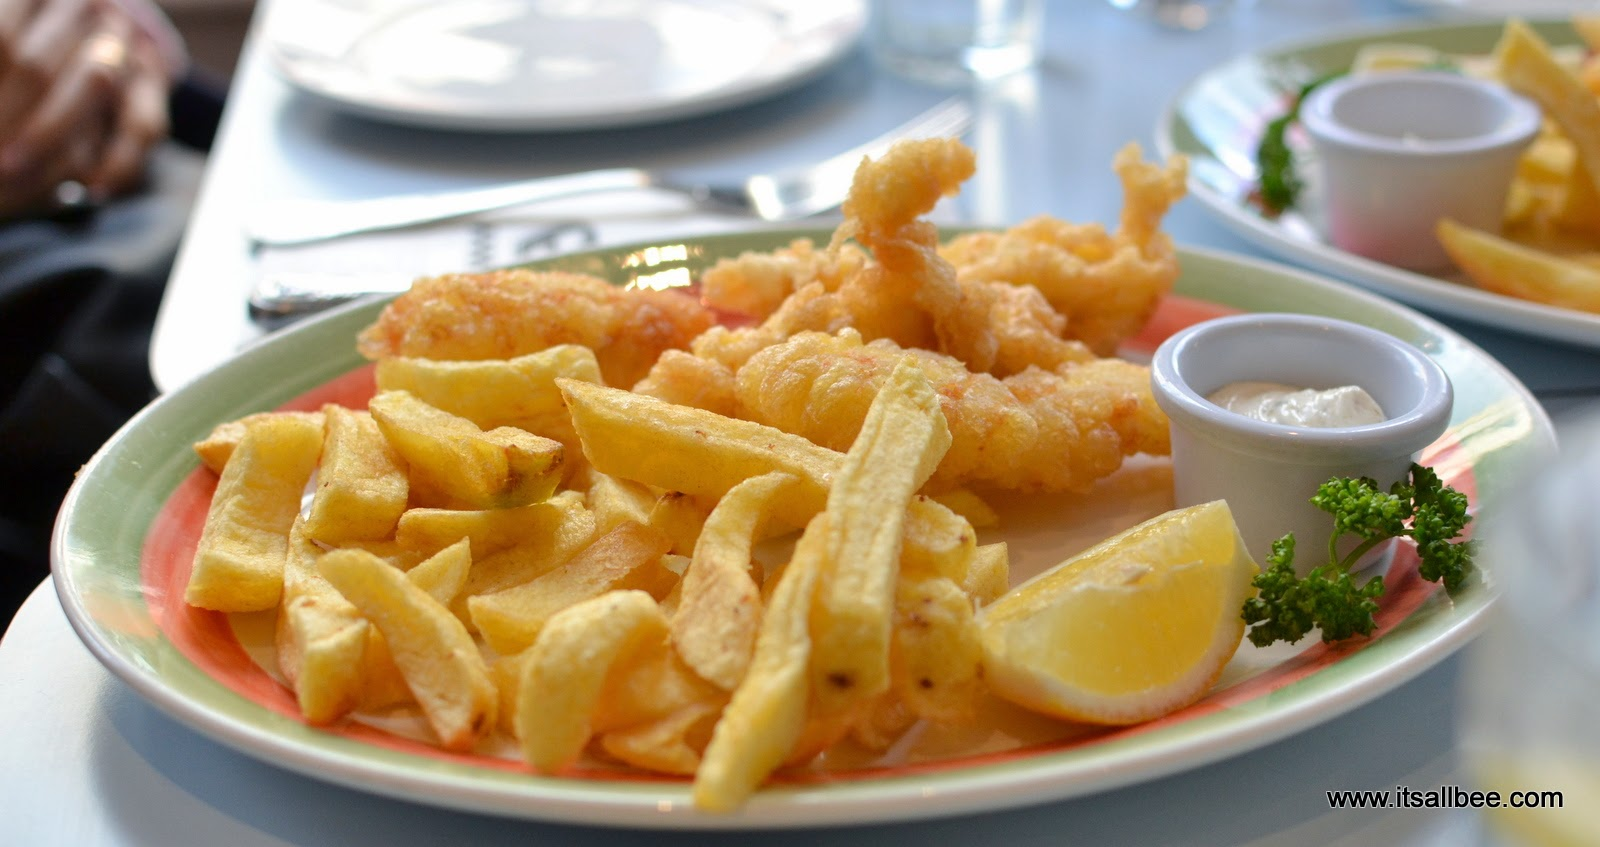 London's Best Fish and Chip Shop